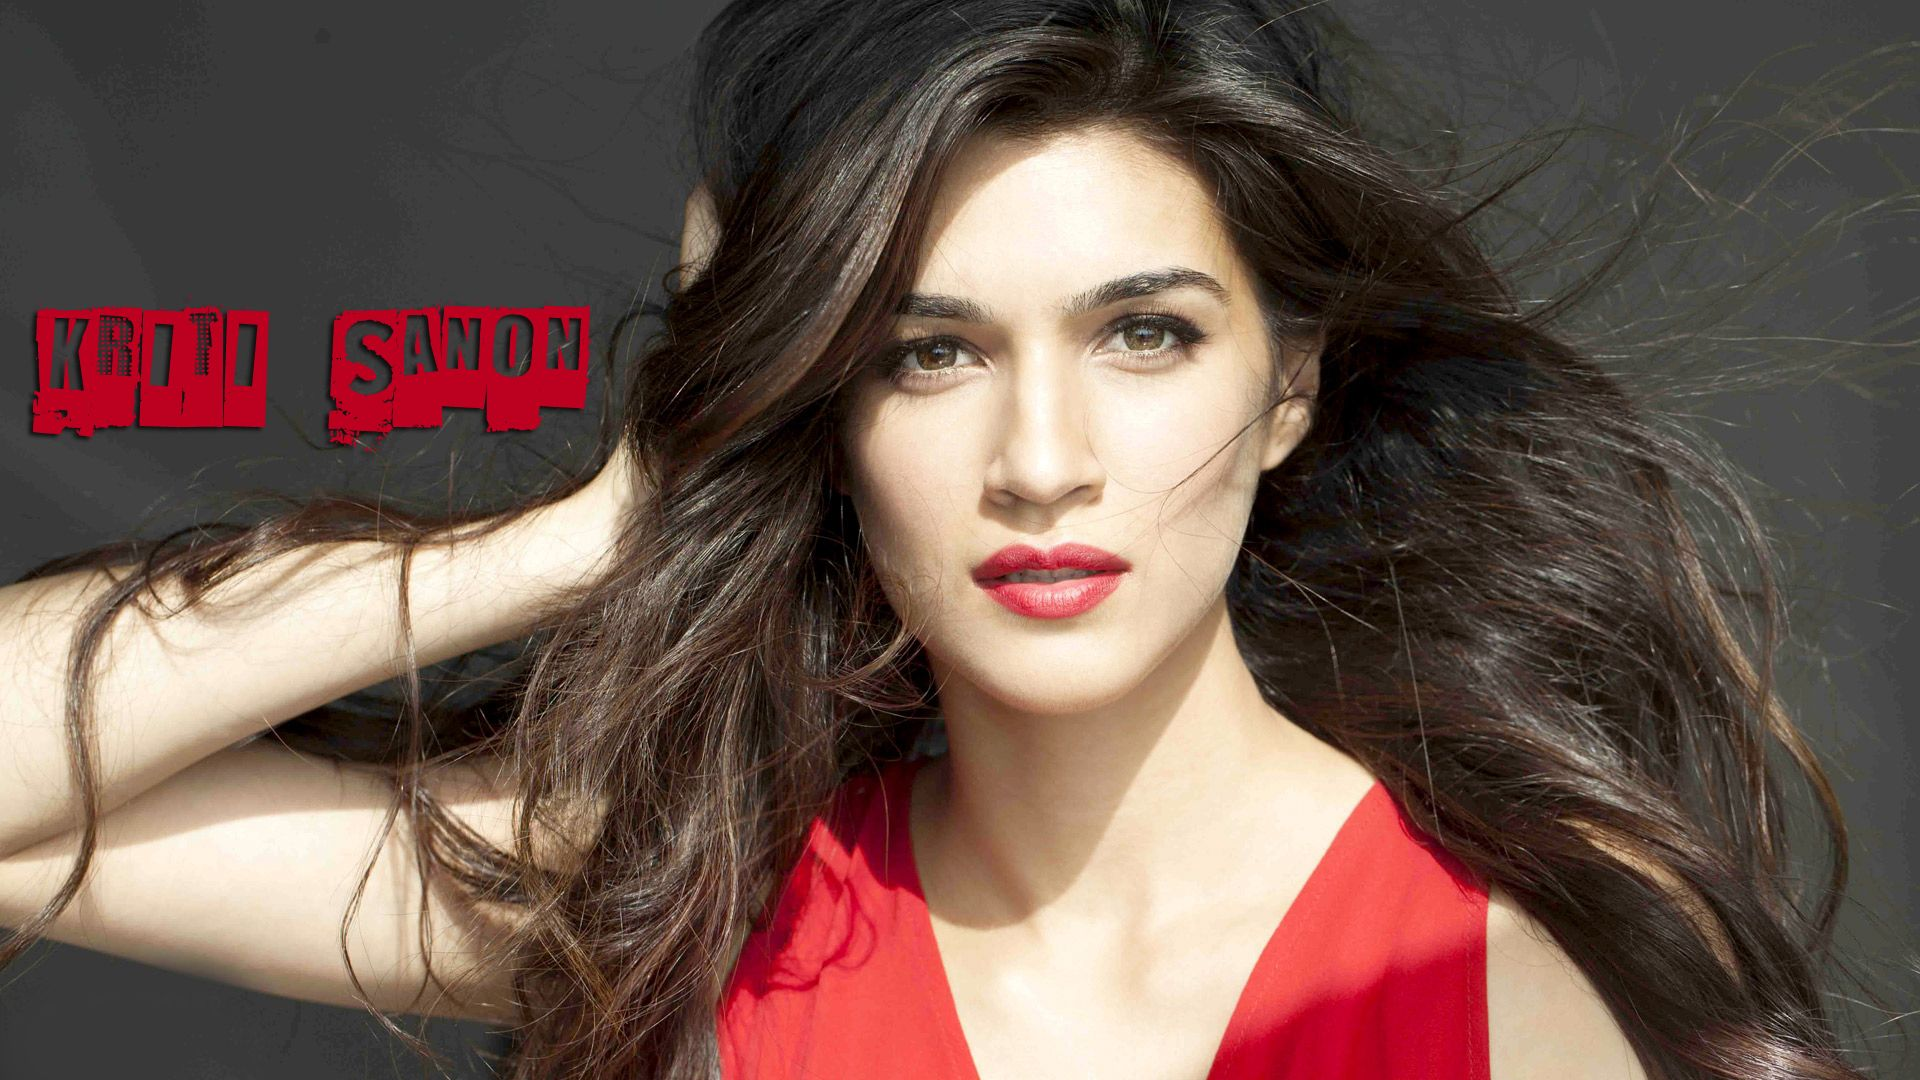 Download Bollywood Actress Hd Wallpapers 1080p Free: Kriti Sanon HD Wallpaper Kriti Sanon, Bollywood Actress